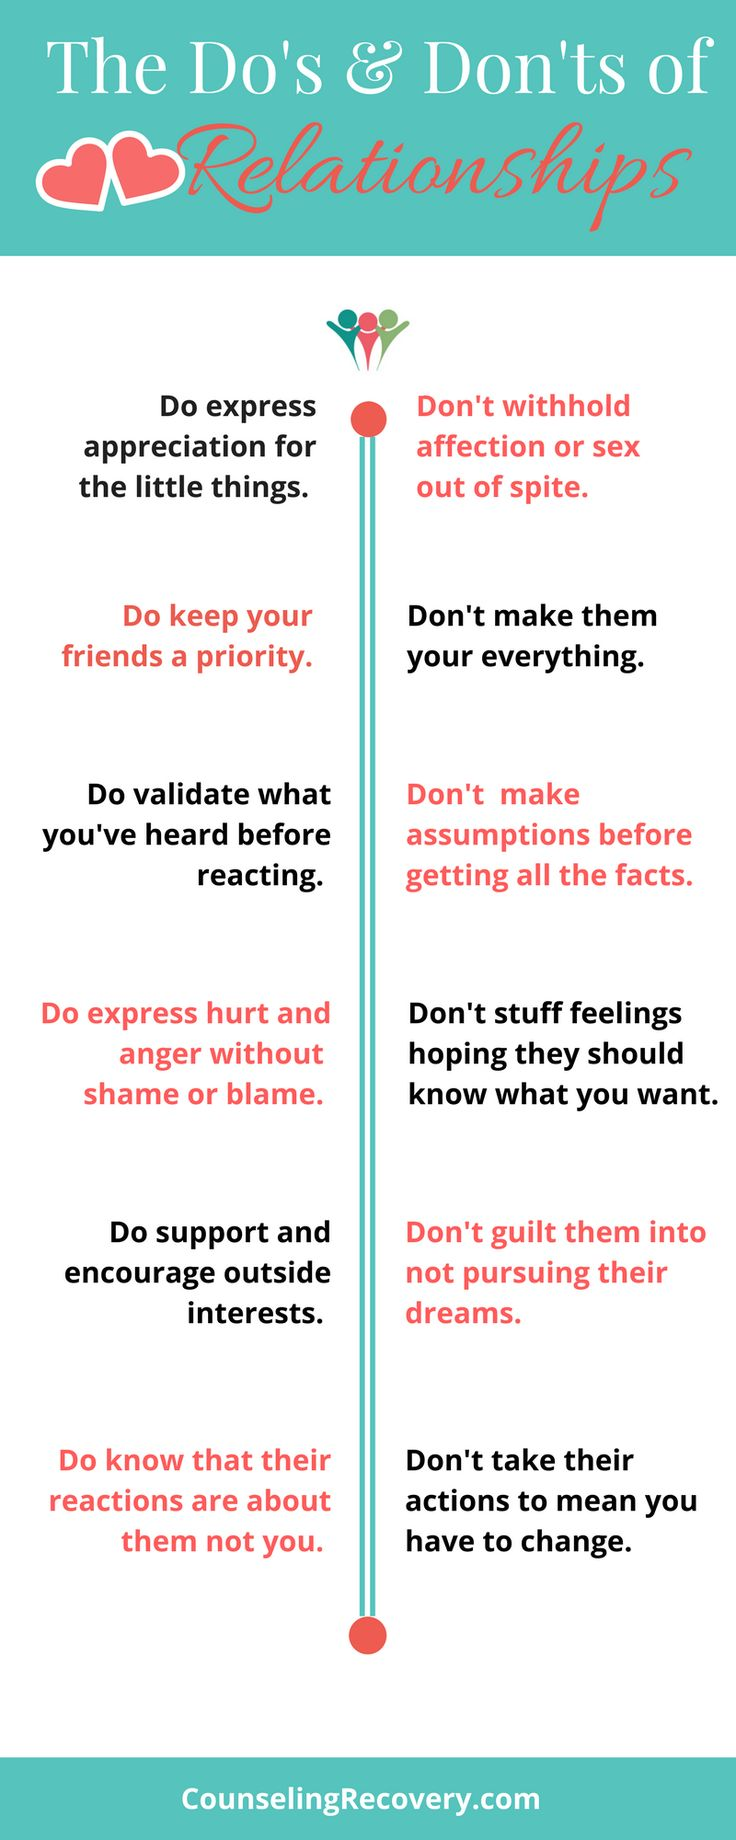 Healthy relationships take work but here are some helpful tips to keep you on the right path. Good communication and self-care are important foundations. Click the image to read more.